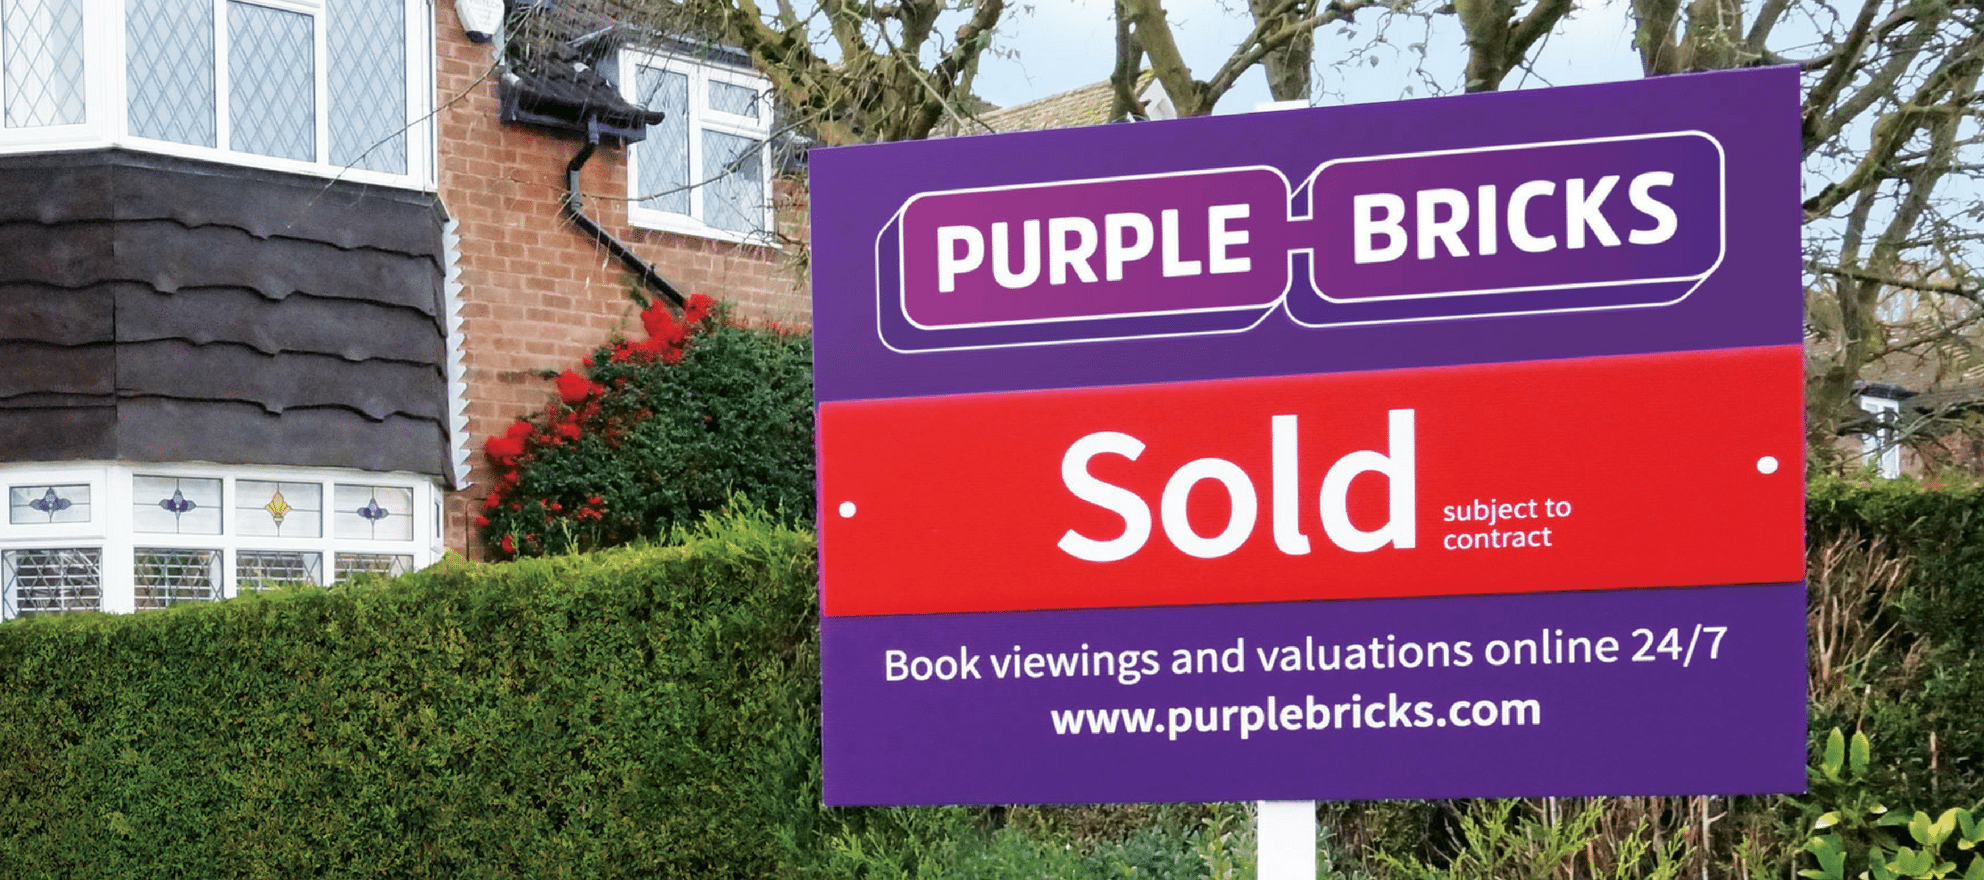 purplebricks misleading ad regulatory ruling